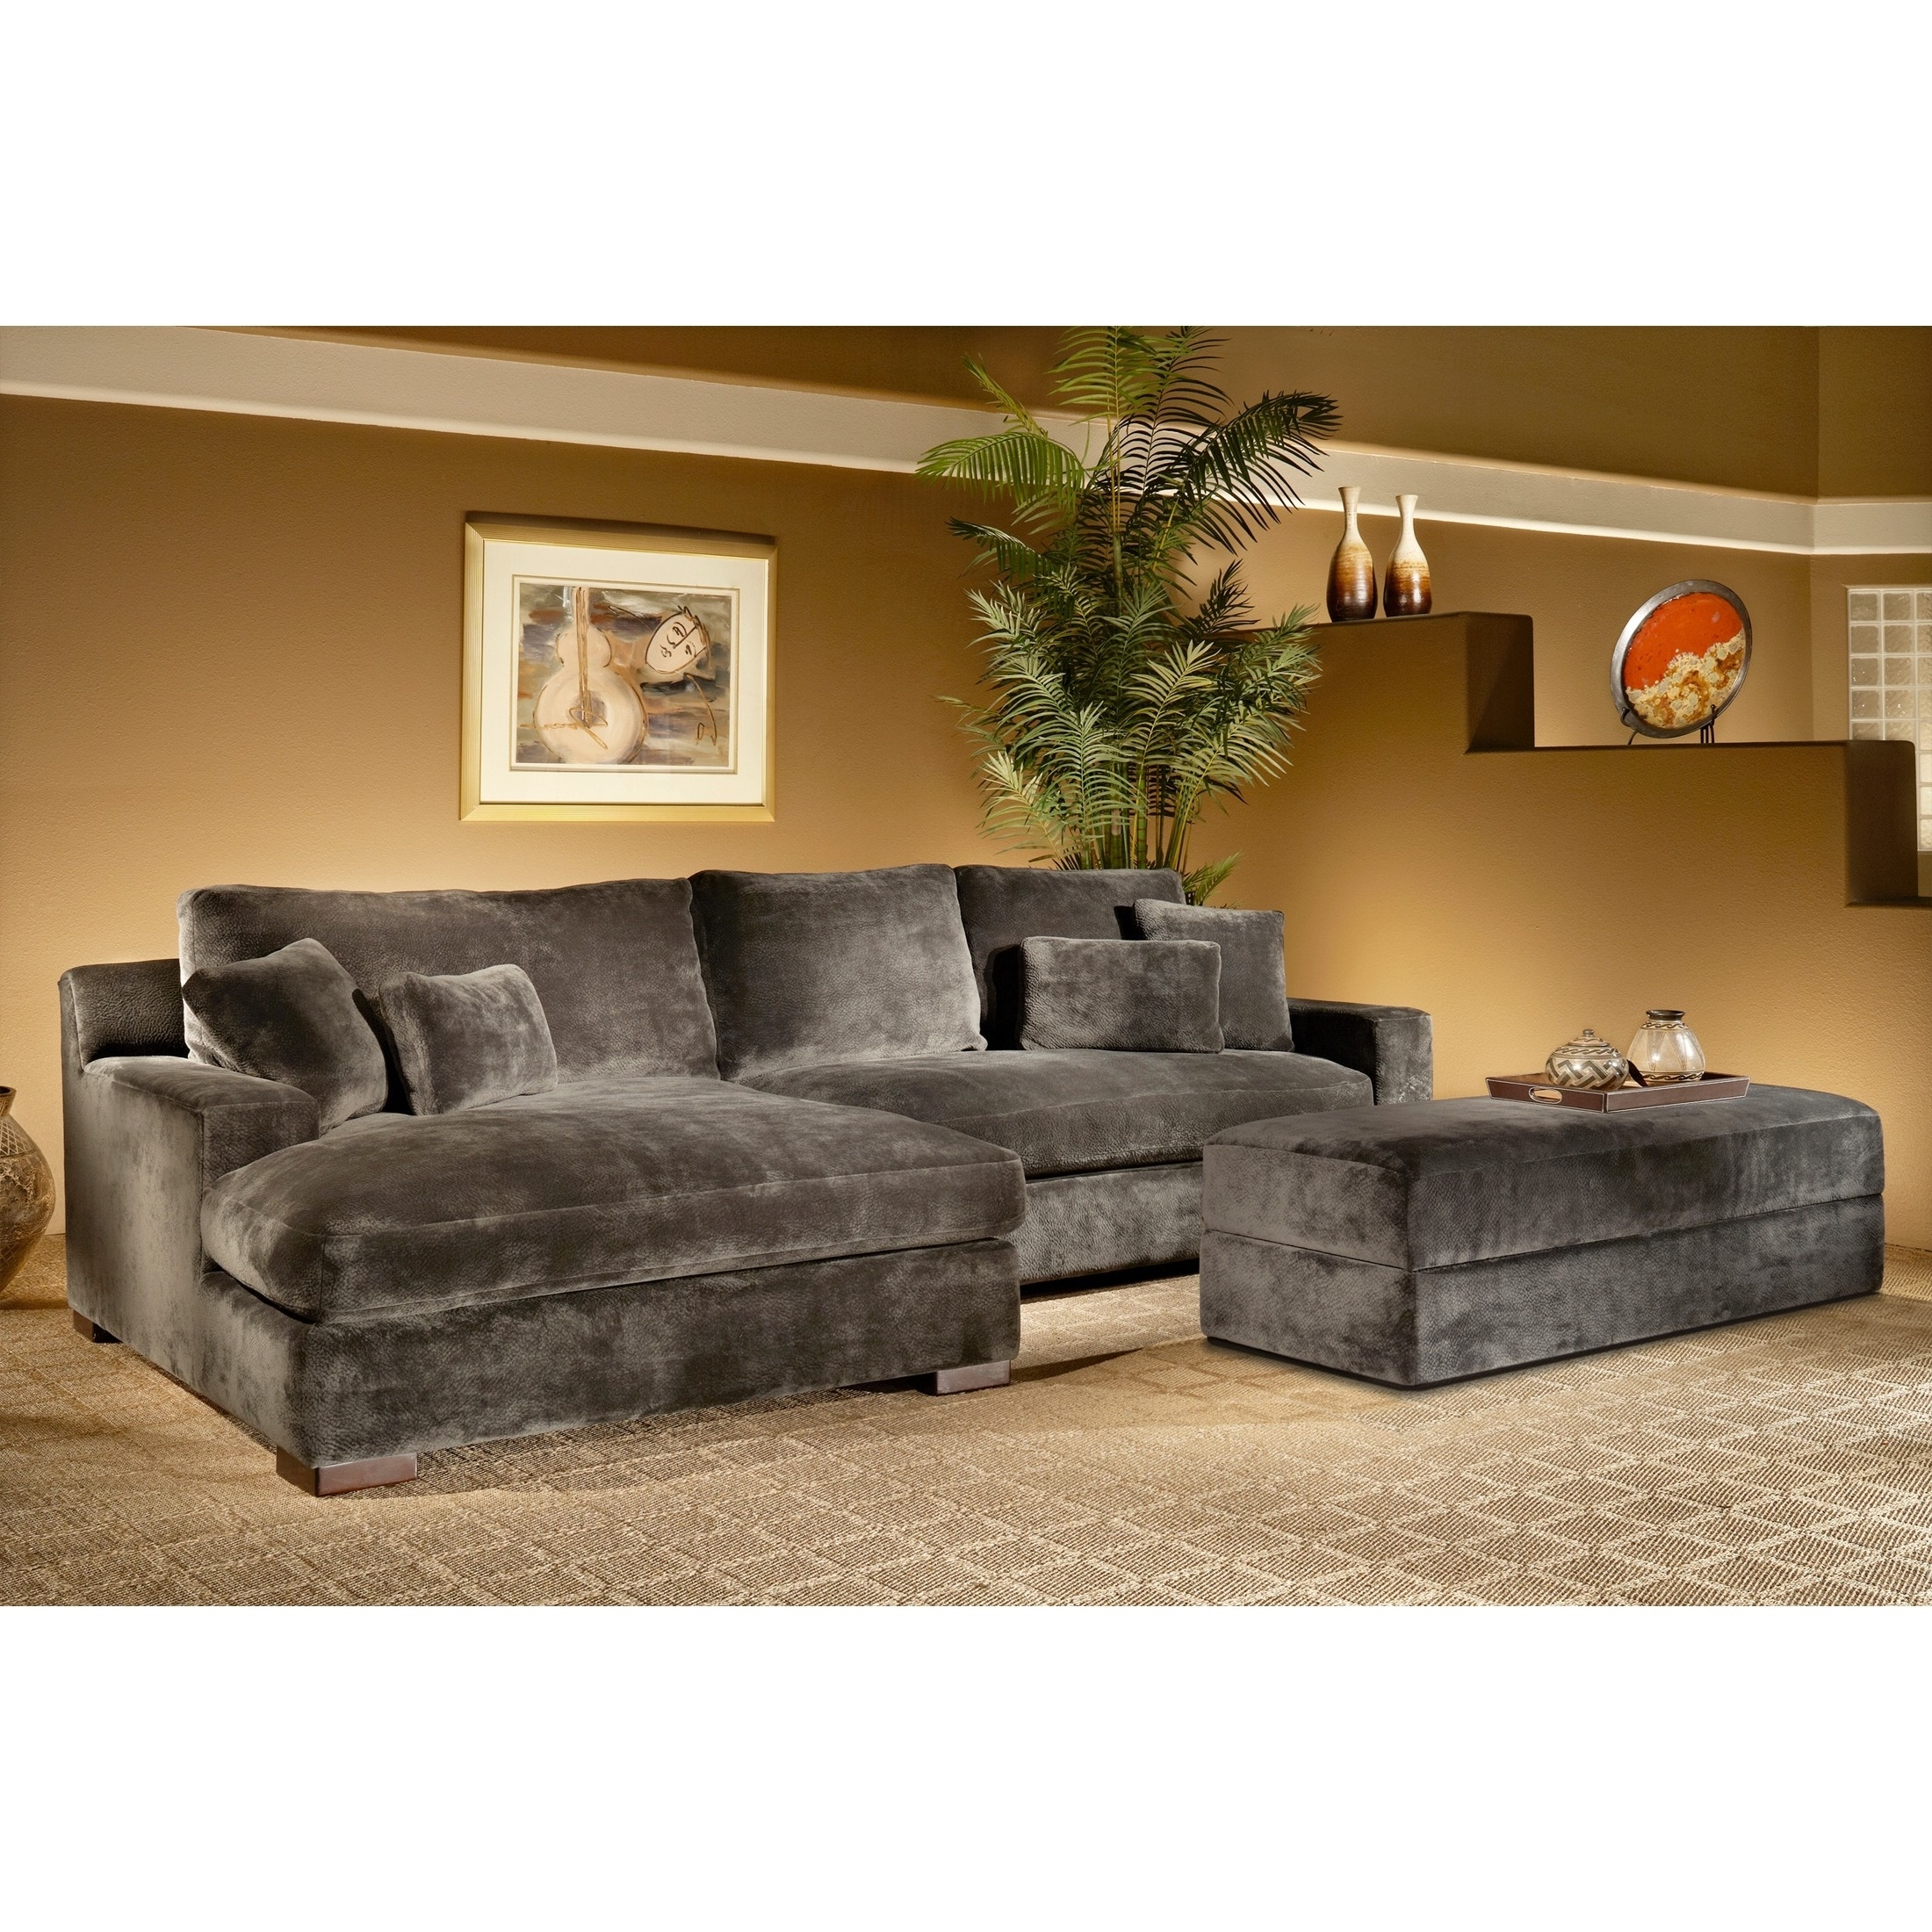 2019 Overstuffed Sofas And Chairs Regarding The Doris 3 Piece Smoke Sectional Sofa With Storage Ottoman Is (View 10 of 20)